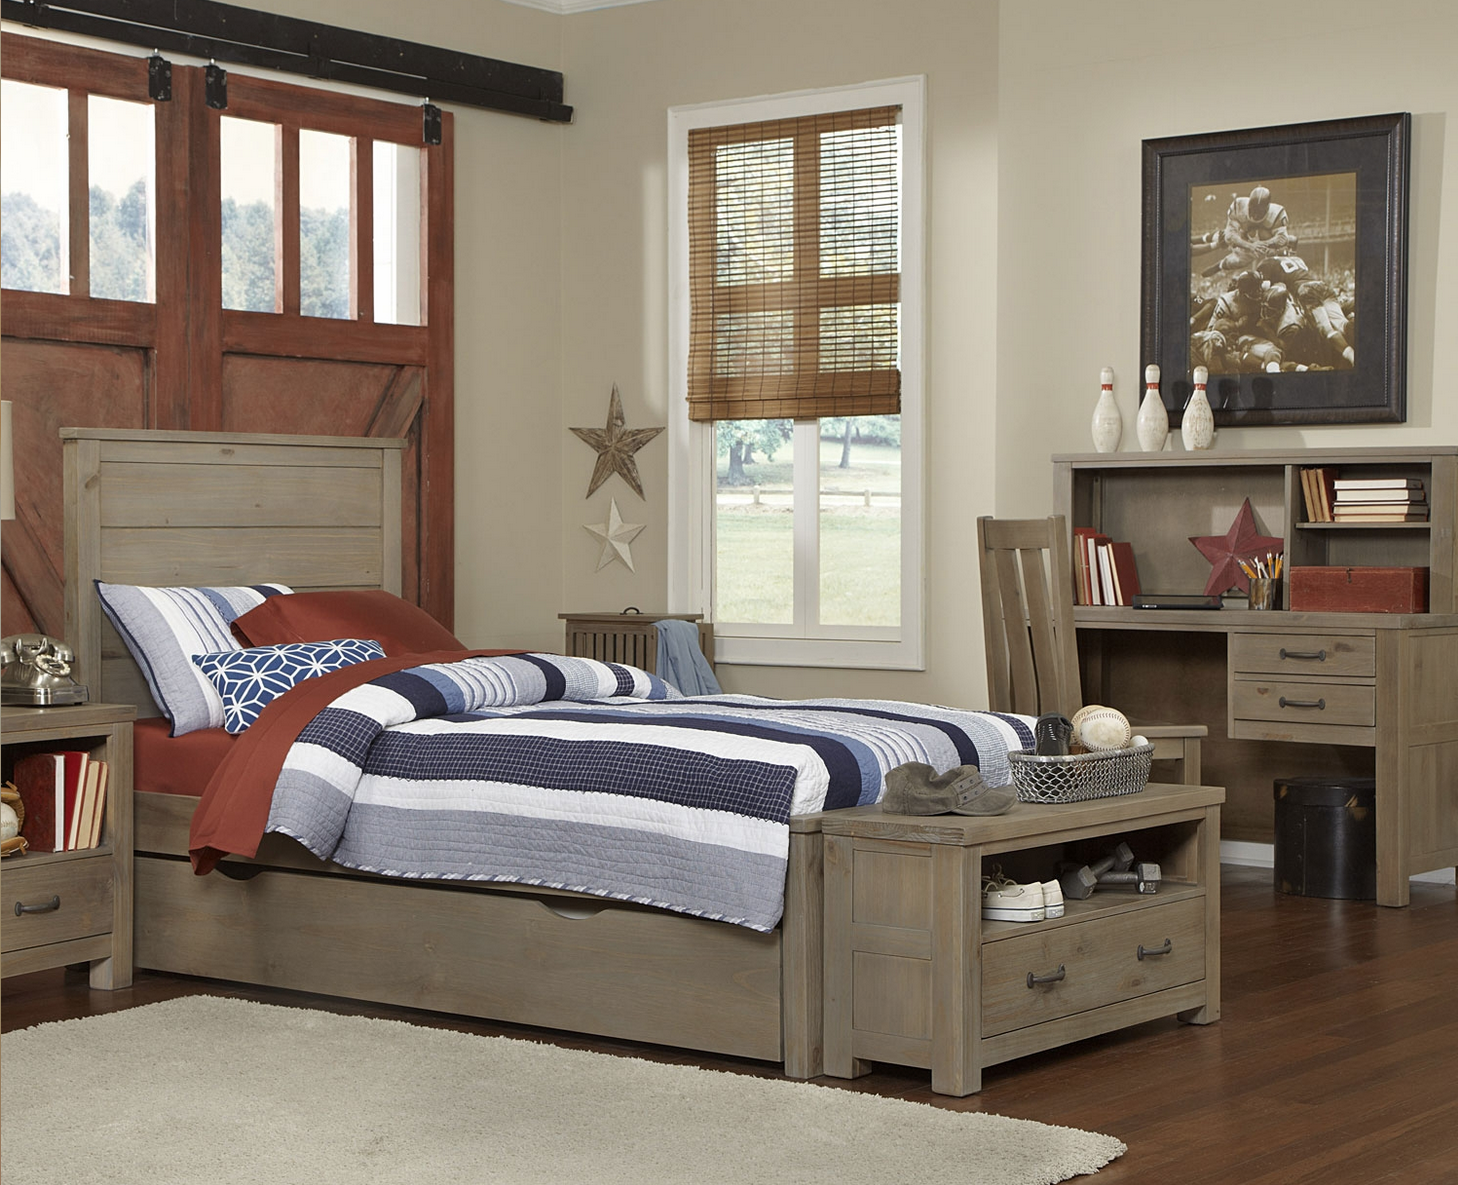 kenwood Collection Panel Bed in Driftwood - Kids Furniture In Los ...